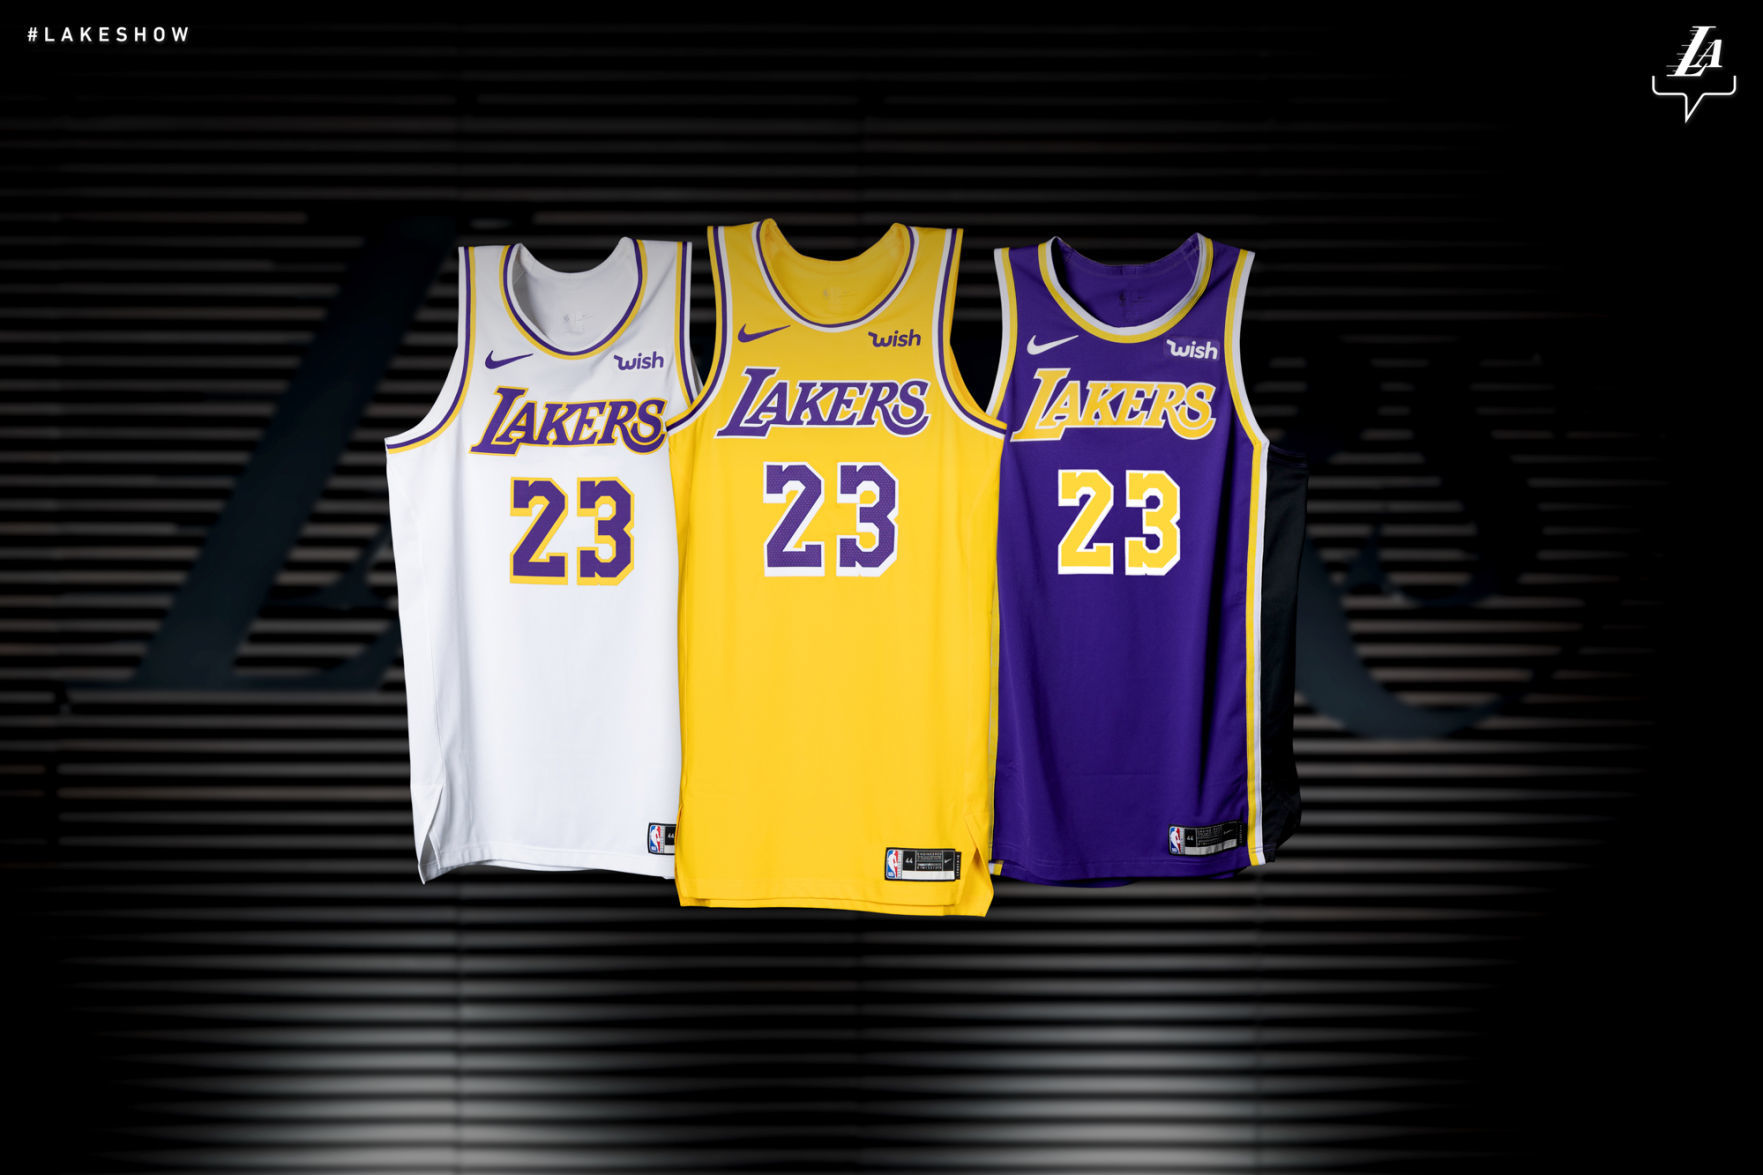 Los Angeles Lakers unveil new jersey design | Sports ...